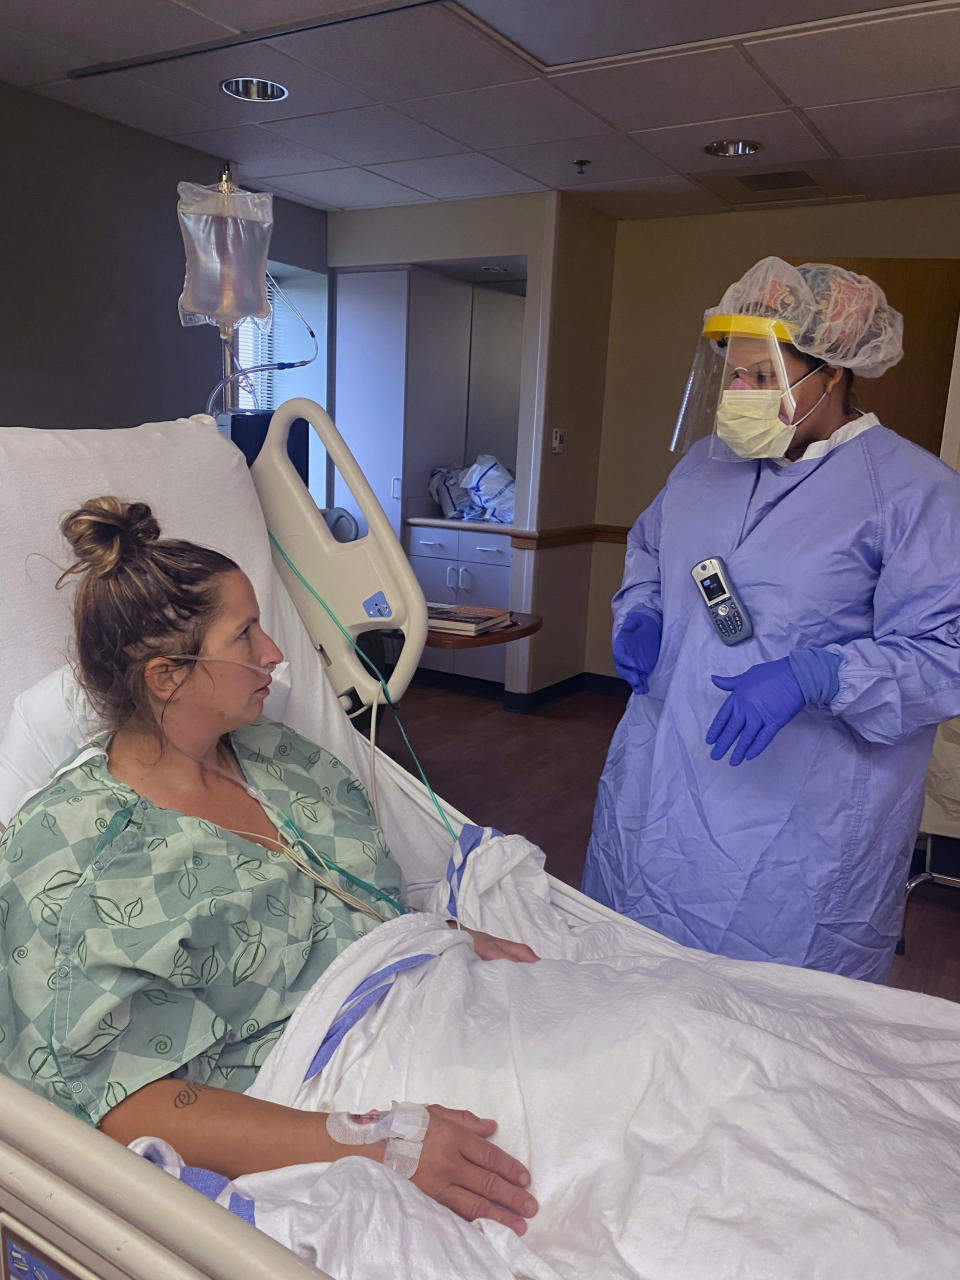 In this photo provided by Ascension Via Christi Health System, Jenifer Phelps, right, a nurse manager, talks with patient Angie Mooneyham in an intensive care unit for coronavirus patients at the Ascension Via Christi St. Francis hospital, Friday, Aug. 7, 2020 in Wichita, Kan. The hospital has created two new units for coronavirus patients as hospitalizations have increased, both in Wichita and across Kansas. (Ascension Via Christi Health System via AP)